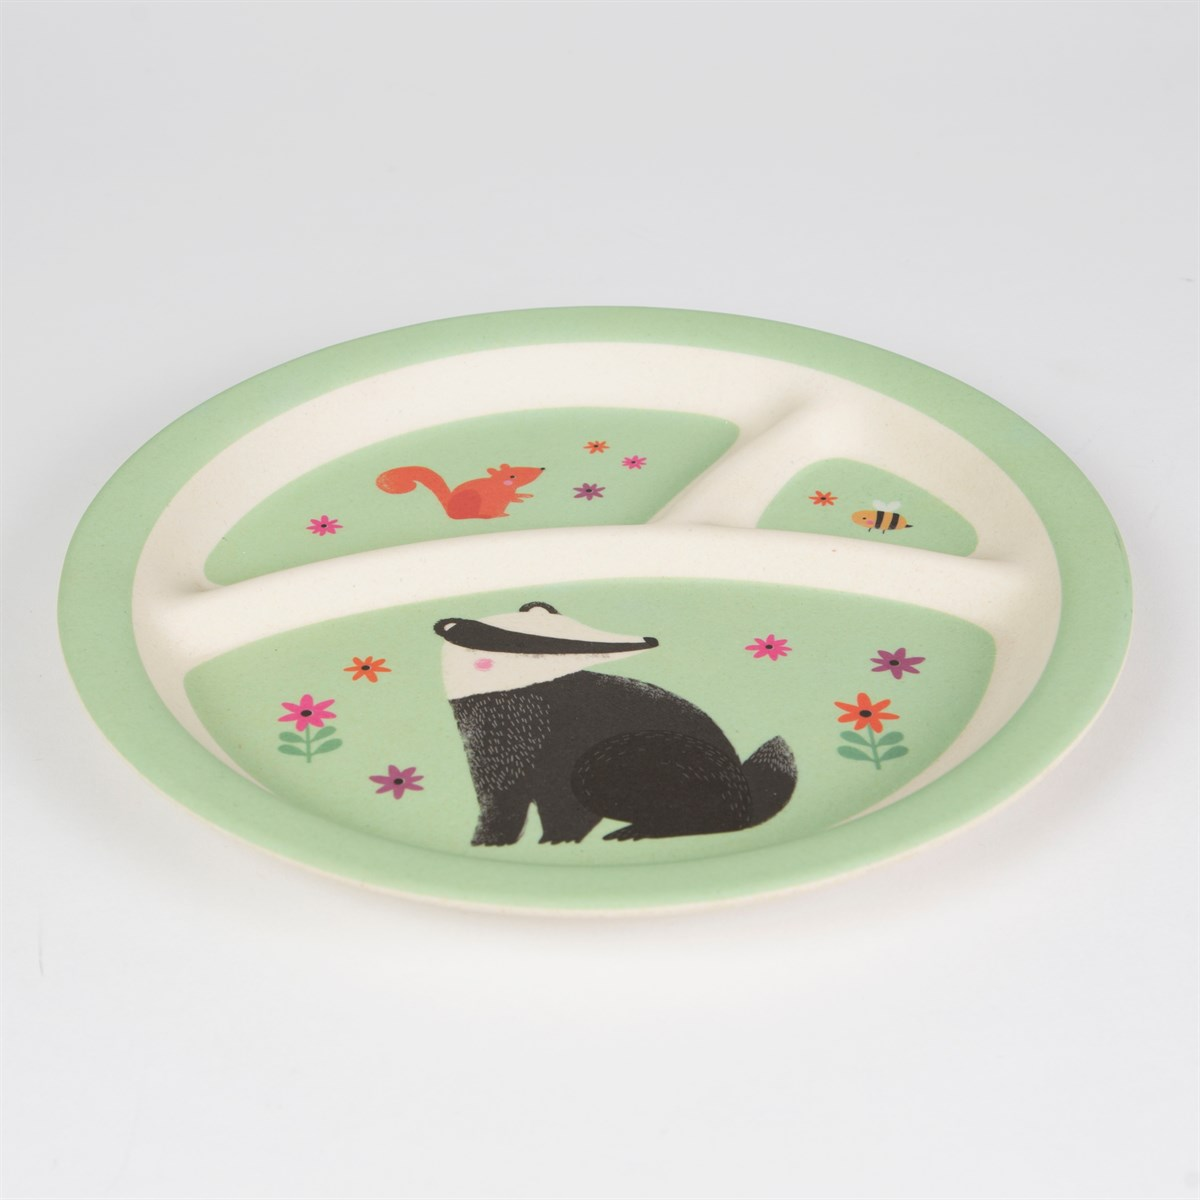 Bamboo 'Woodland Friends' Children's Plate